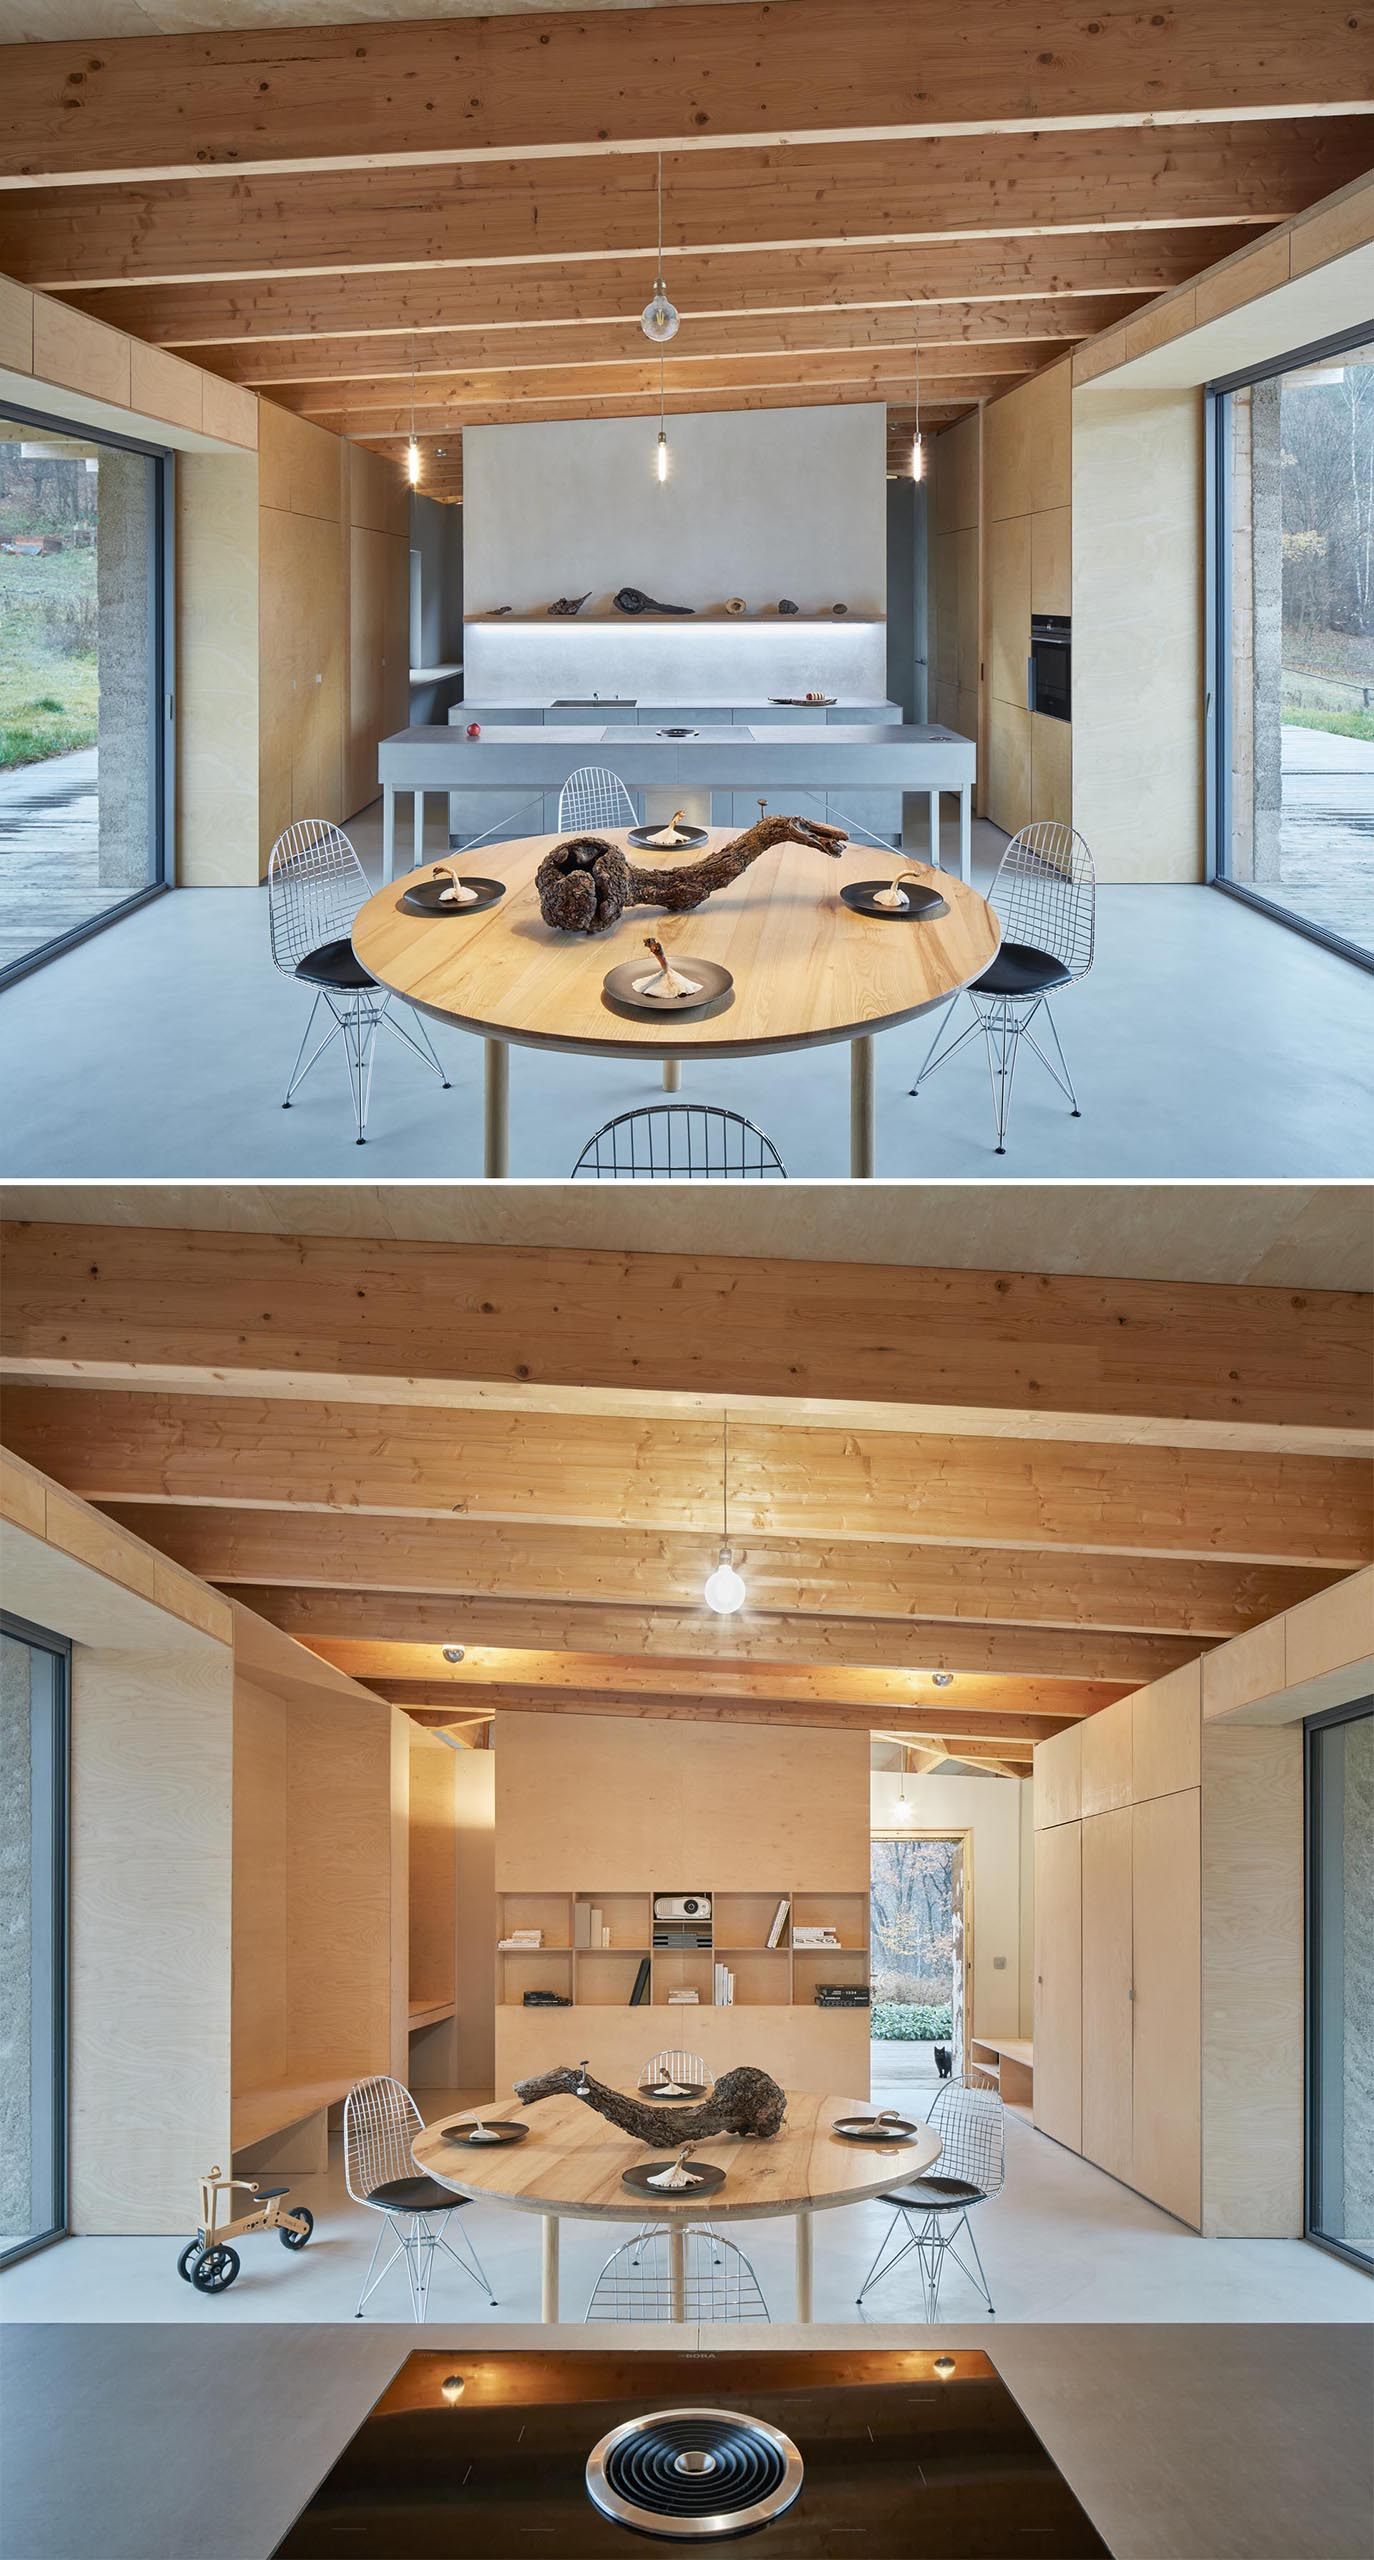 Large glass doors on either side of the social areas of this modern cabin, fill the interior with natural light and open to the deck that surrounds the home.